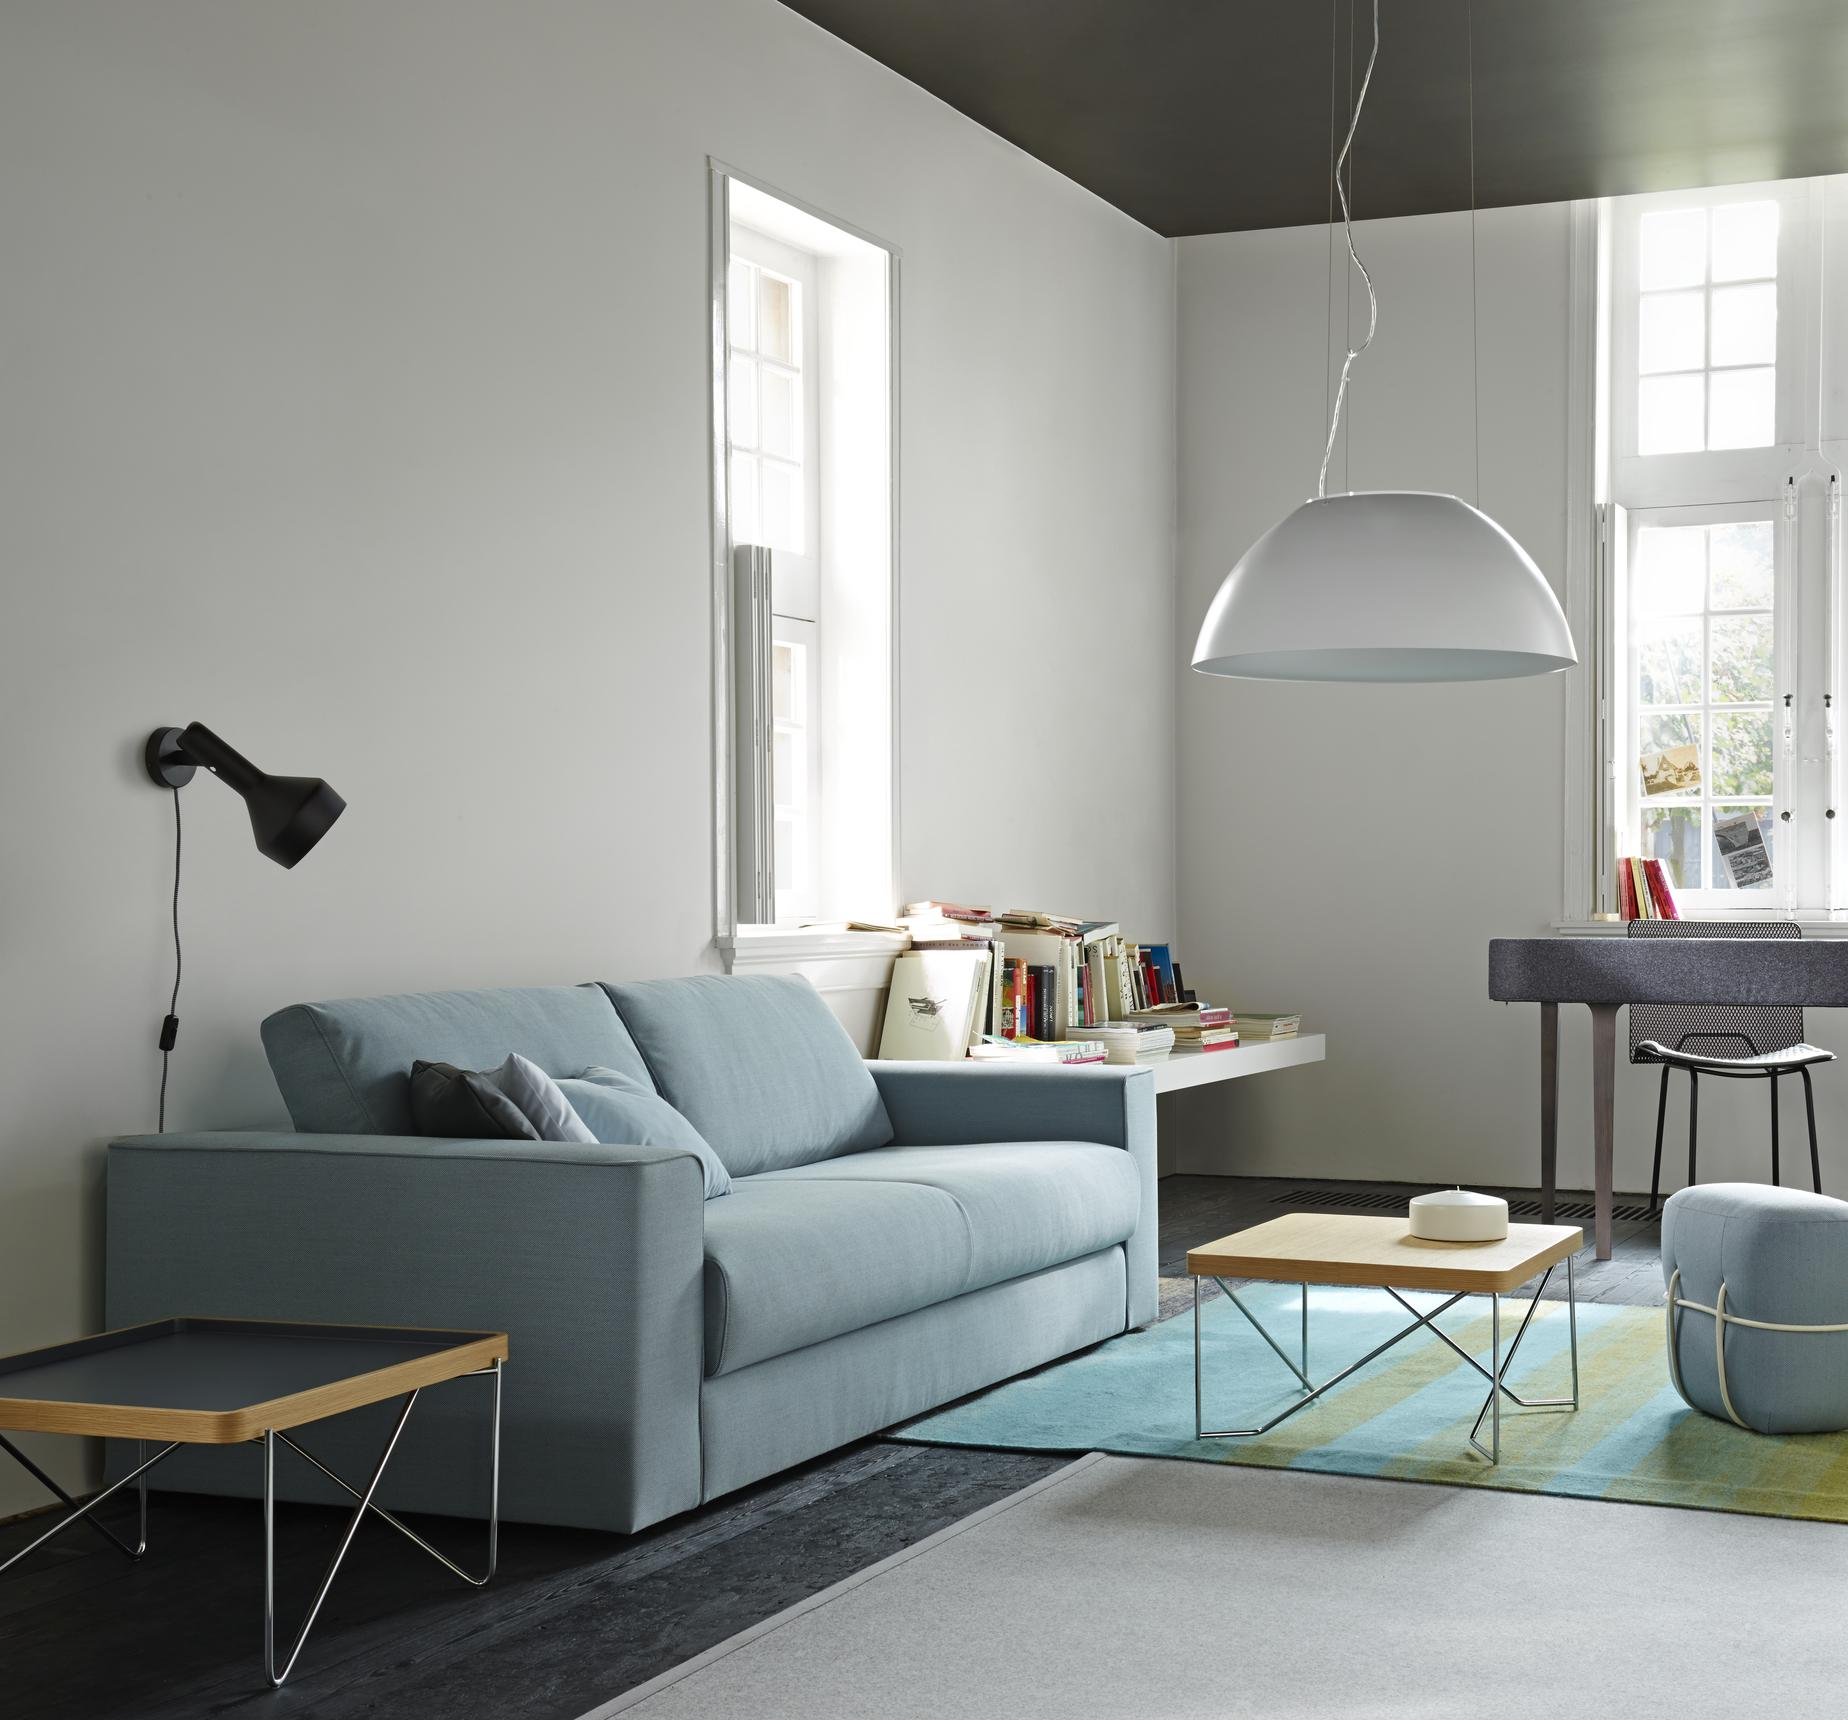 Do not disturb sofa beds designer ligne roset - Canape lit ligne roset ...